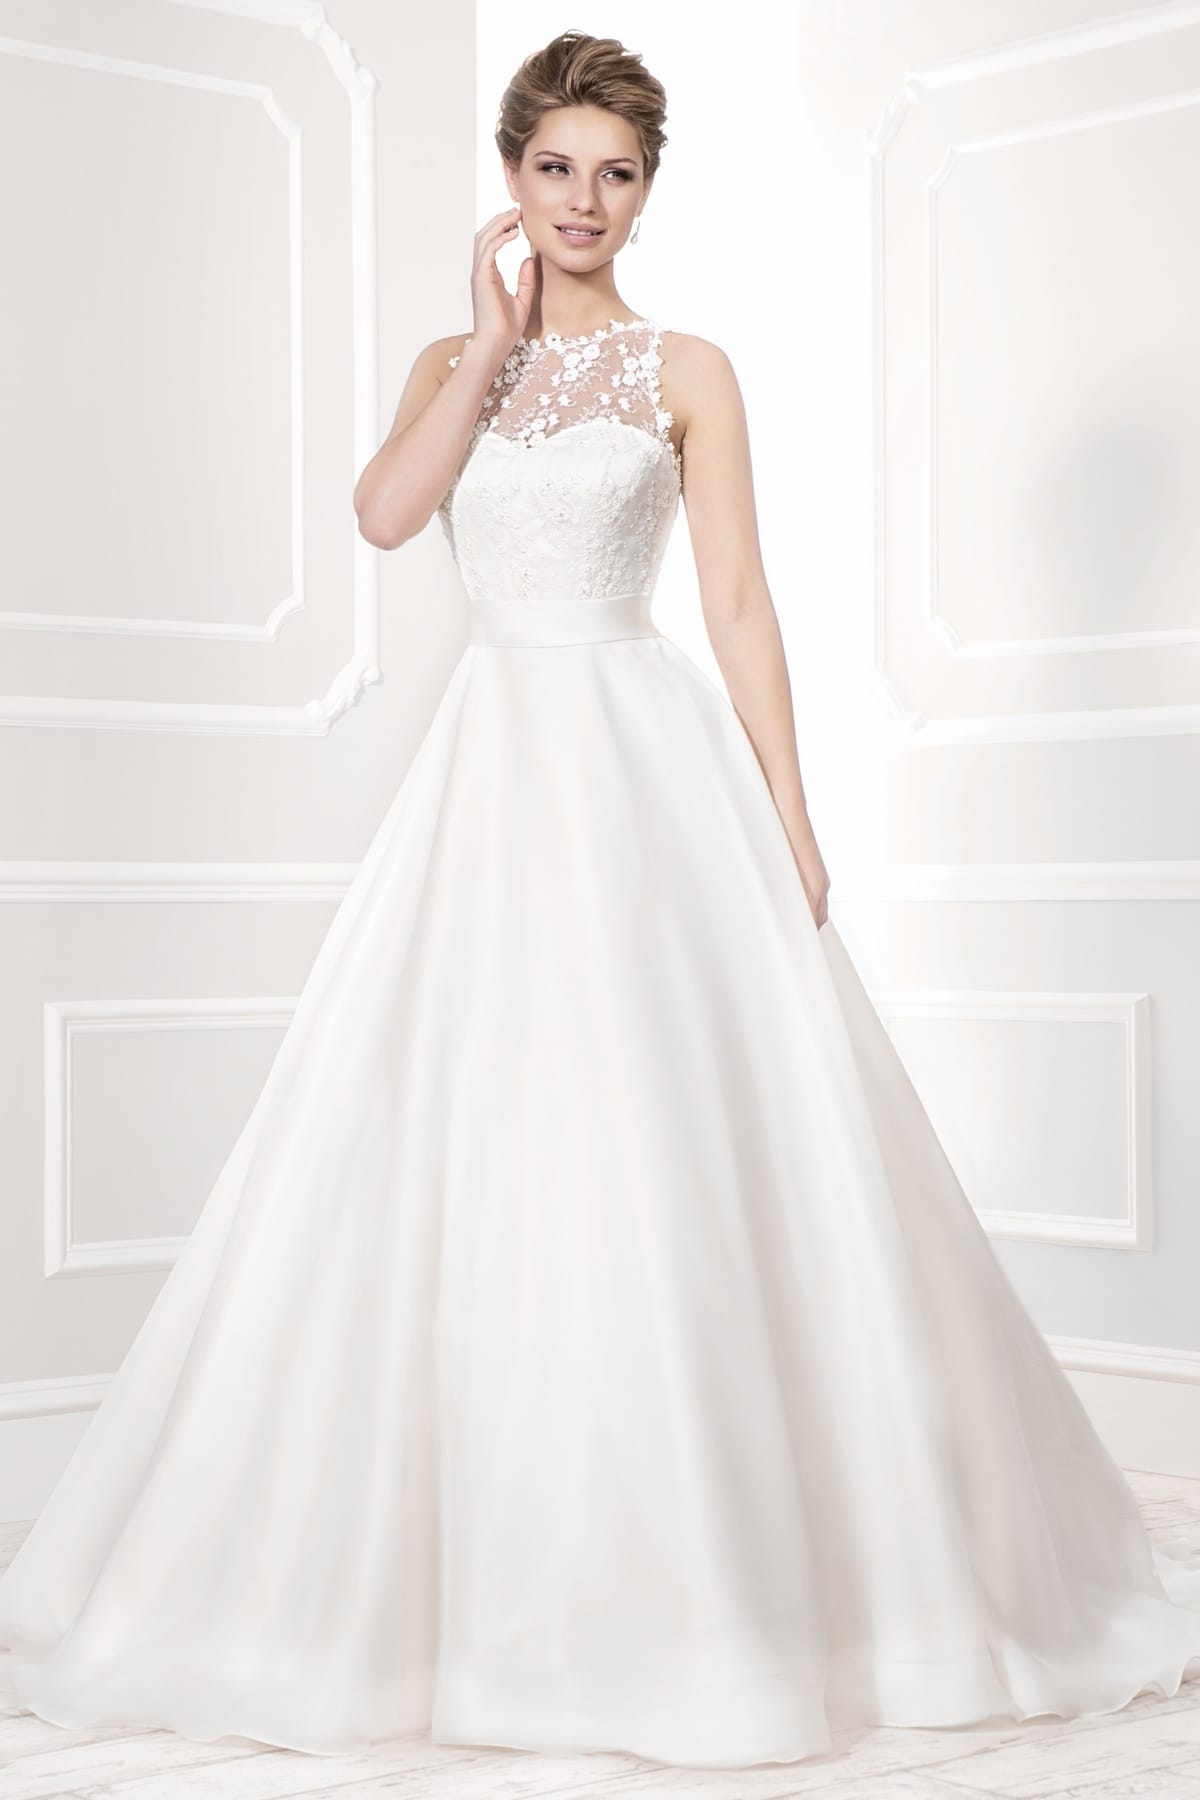 Ellis bridals sell my wedding dress online sell my for Where to sell wedding dresses